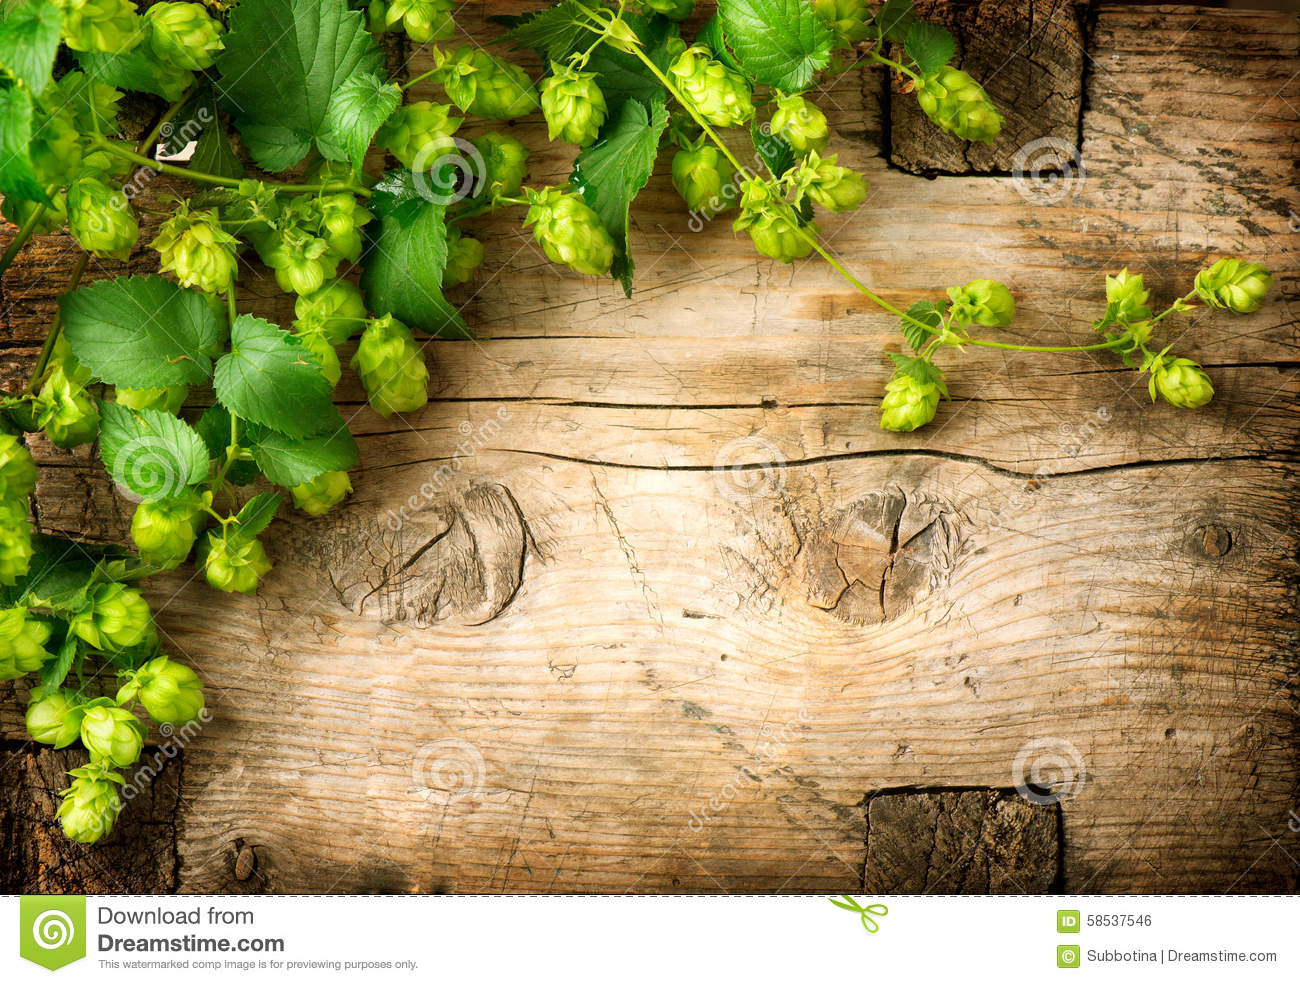 Hop twig over old wooden table background